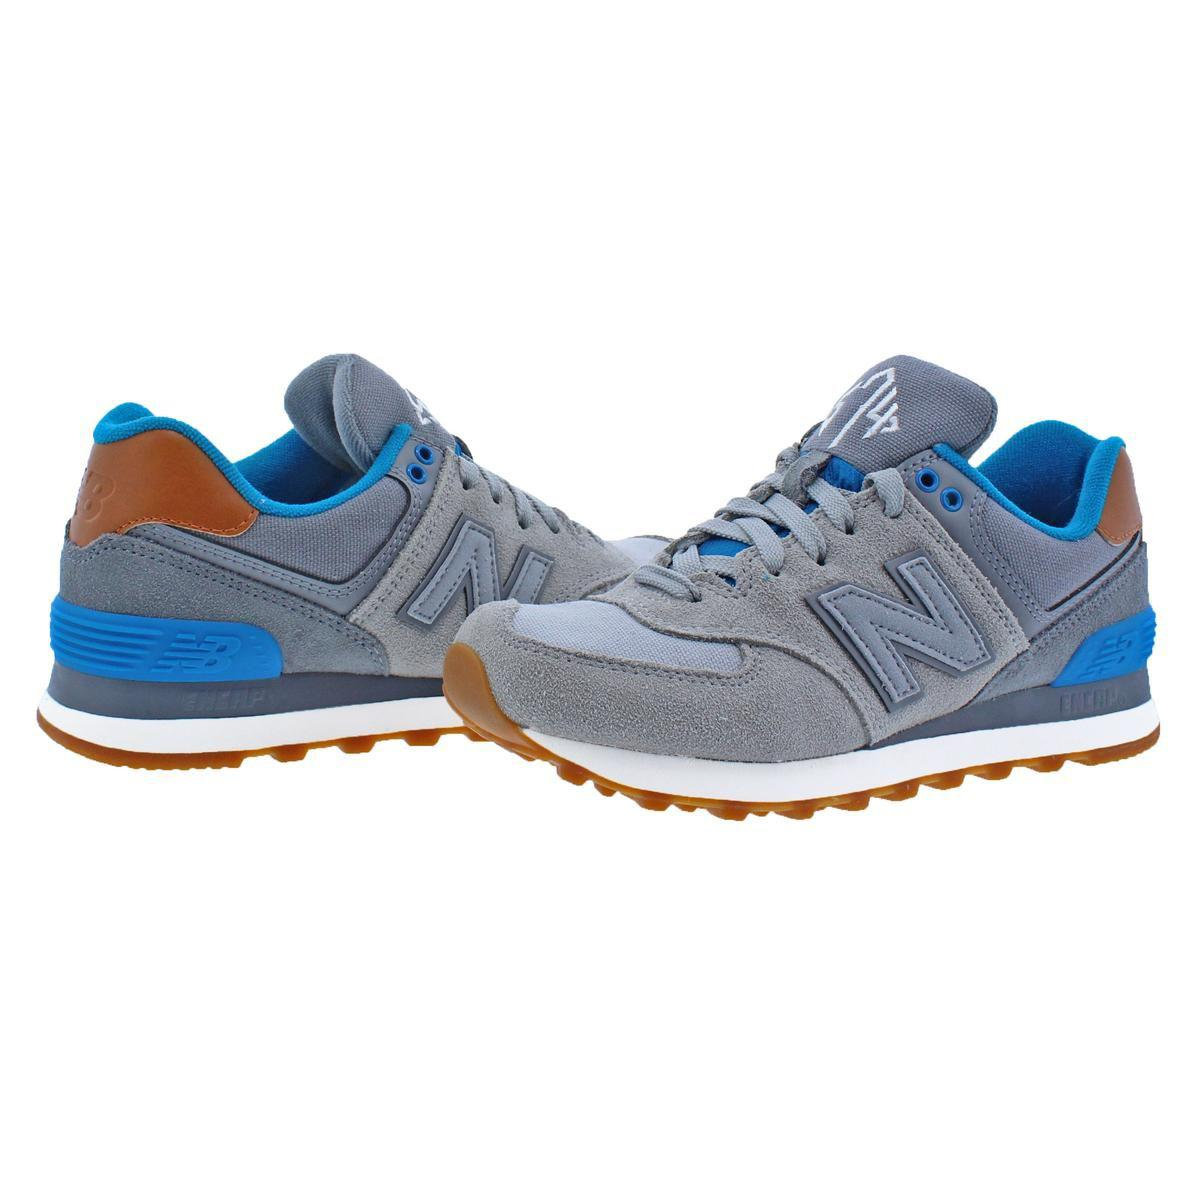 cde910e57aed New Balance - Blue Womens Classics 574 Low-top Casual Running Shoes - Lyst.  View fullscreen